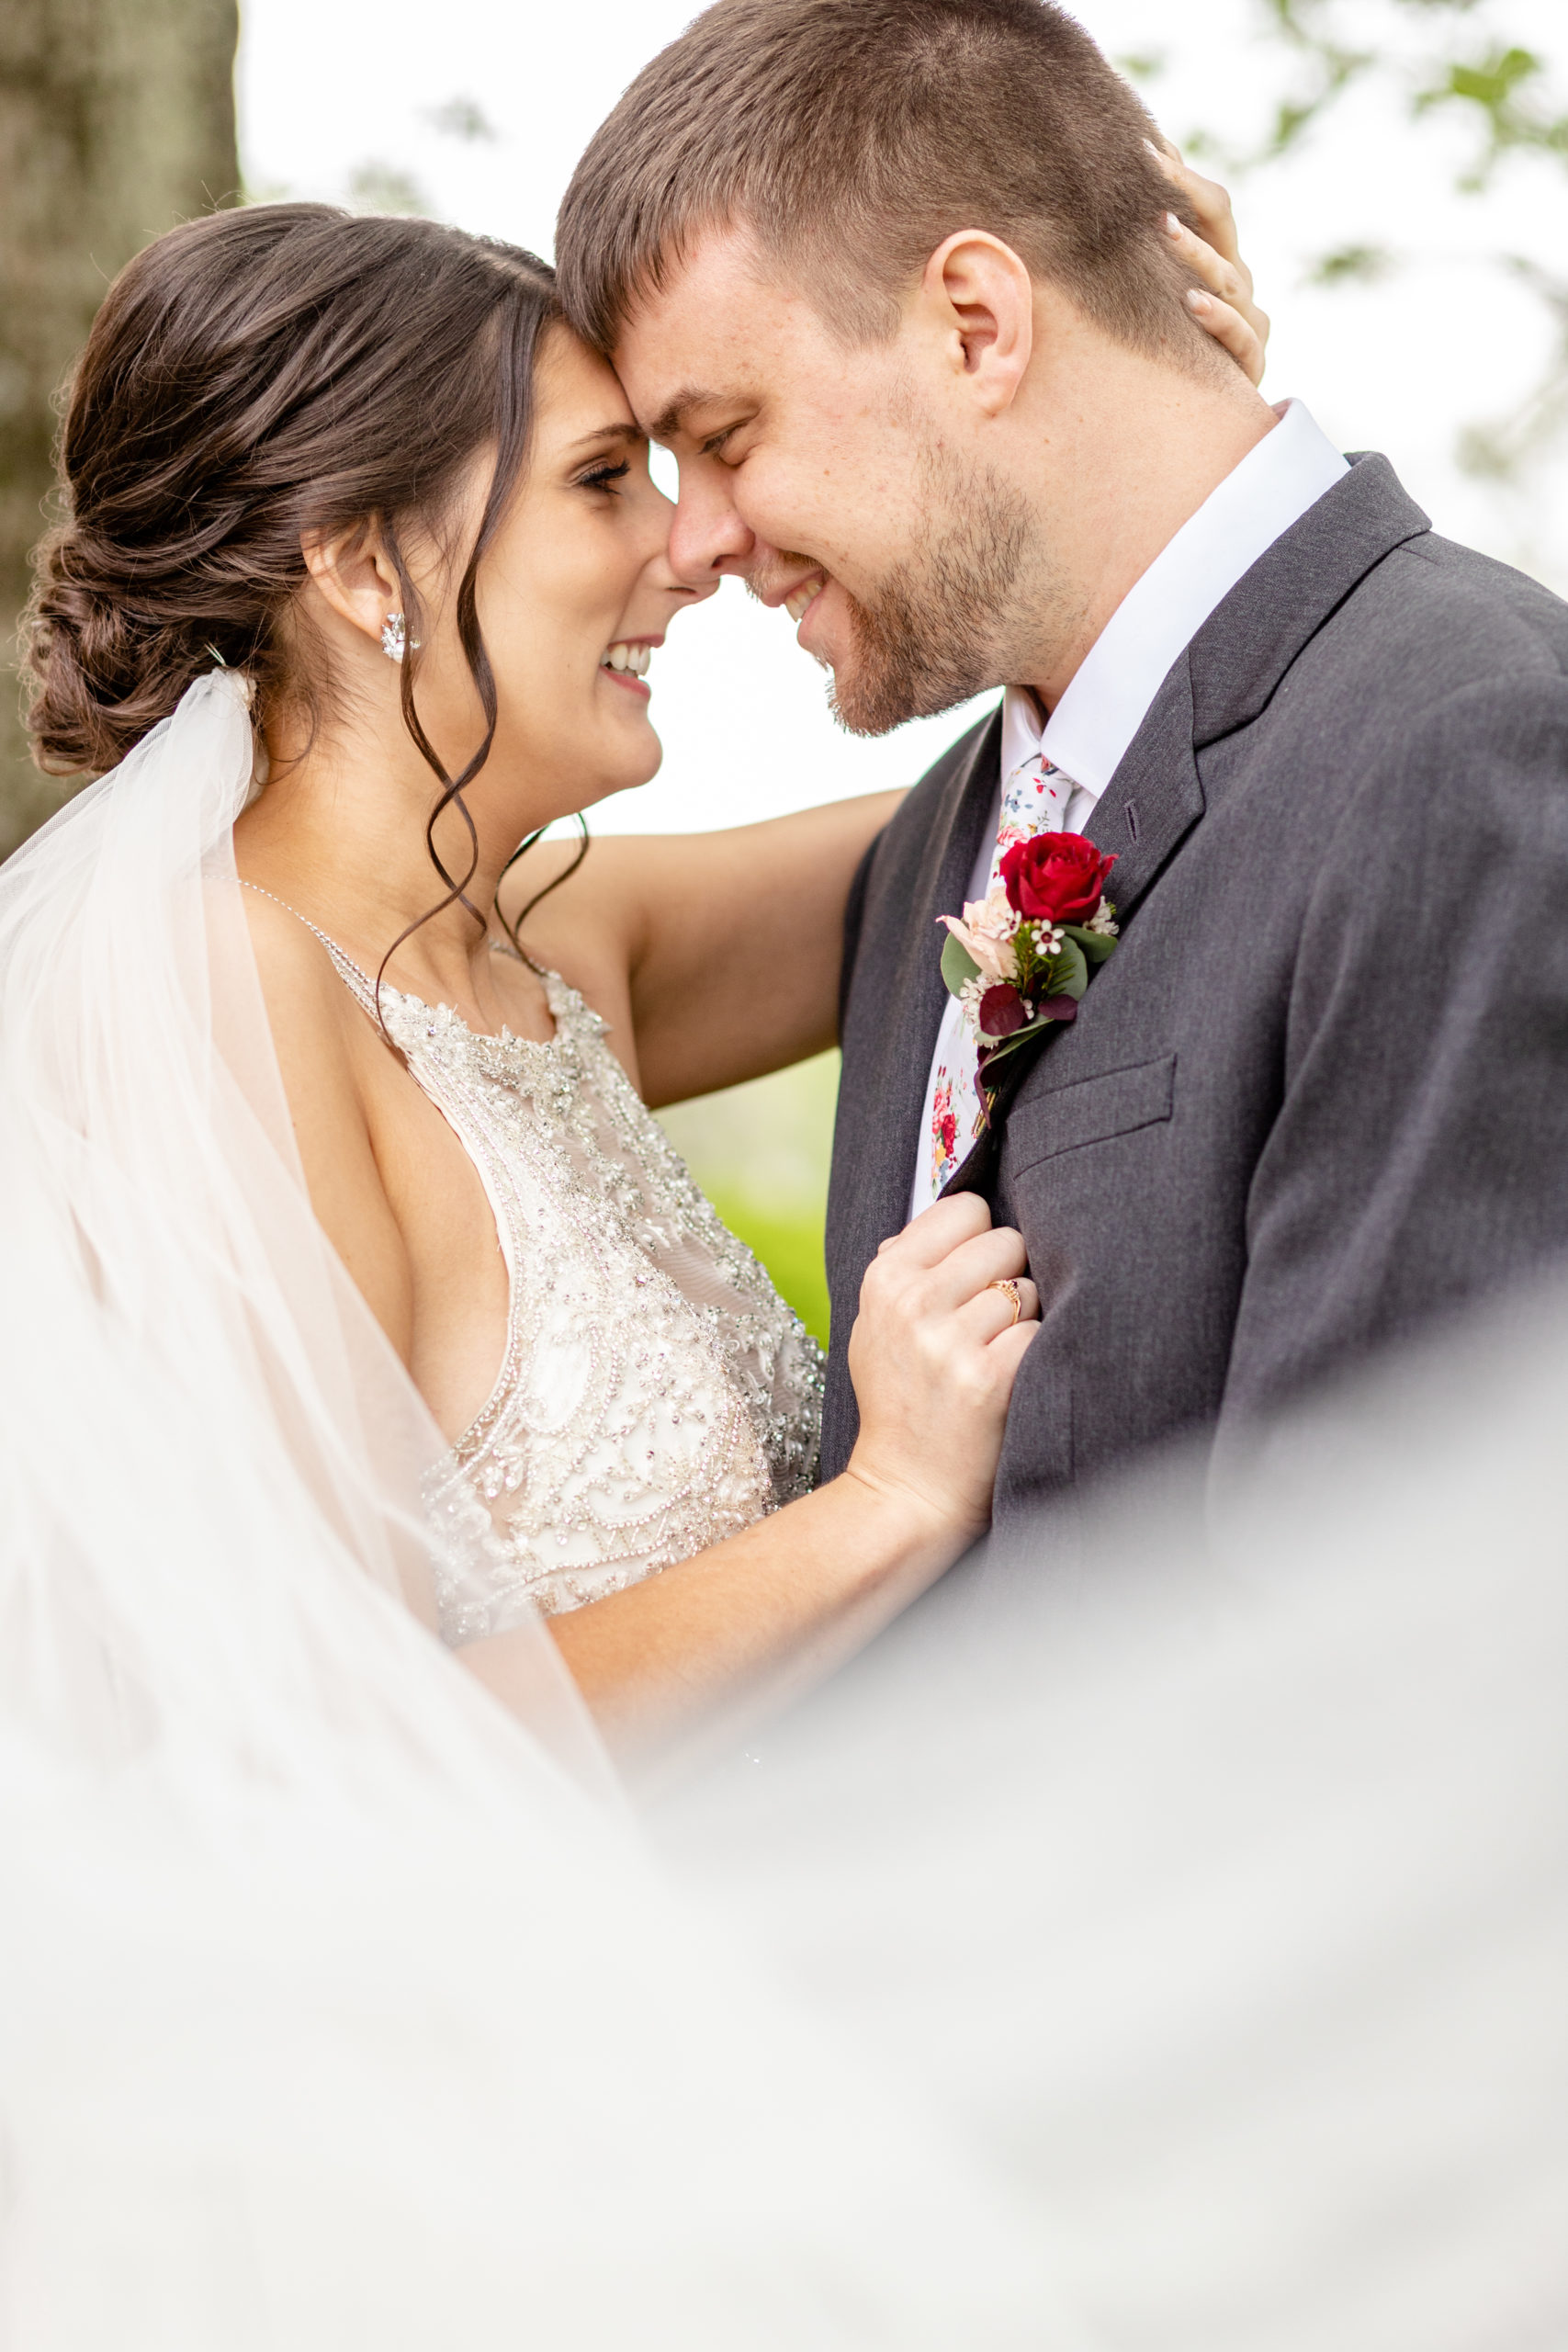 bride and groom, veil, wedding dress, grey suit, red rose boutonniere